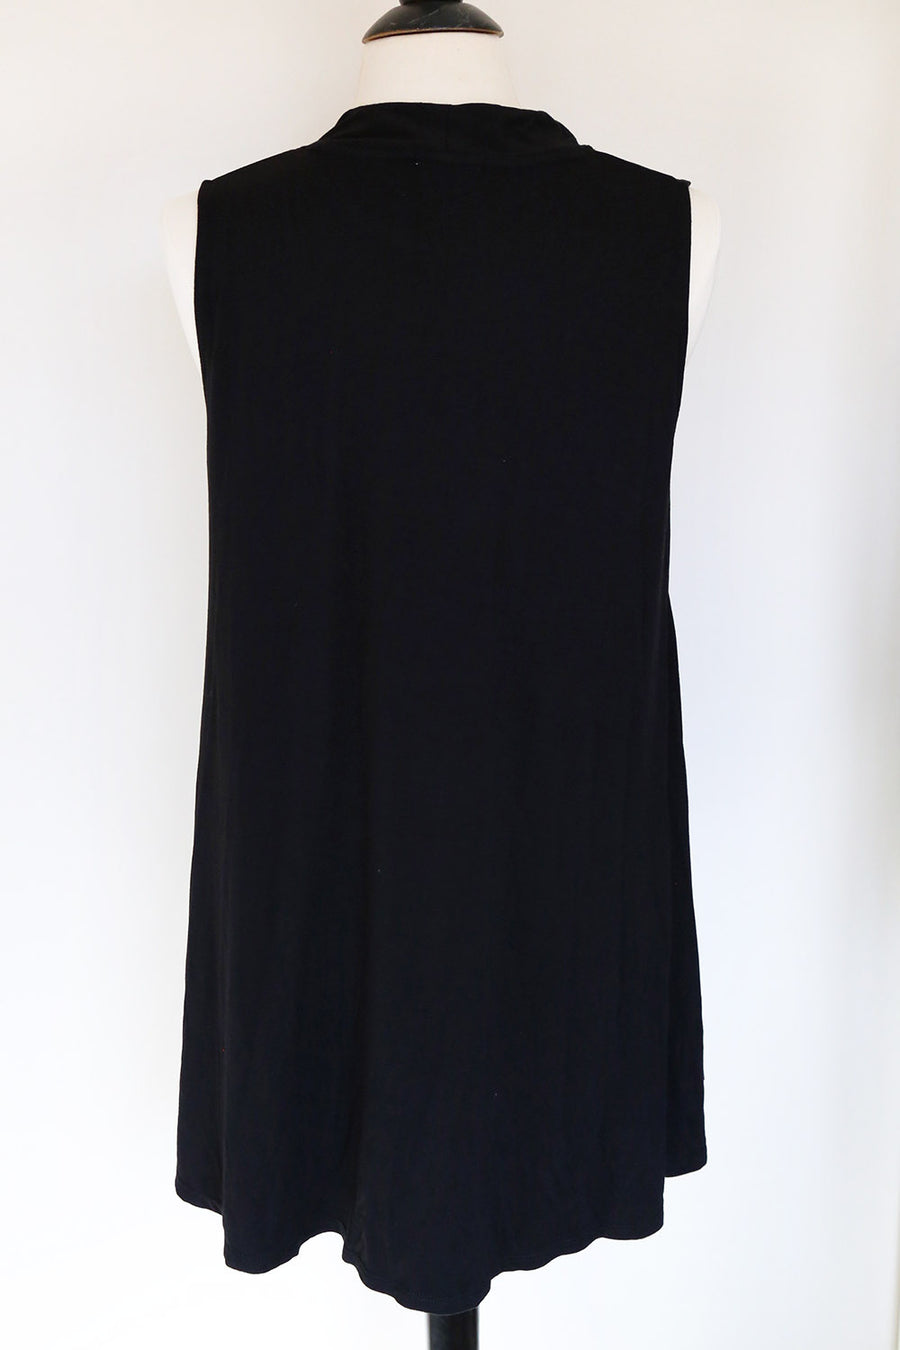 PRELOVED - Black Swing Tunic Top